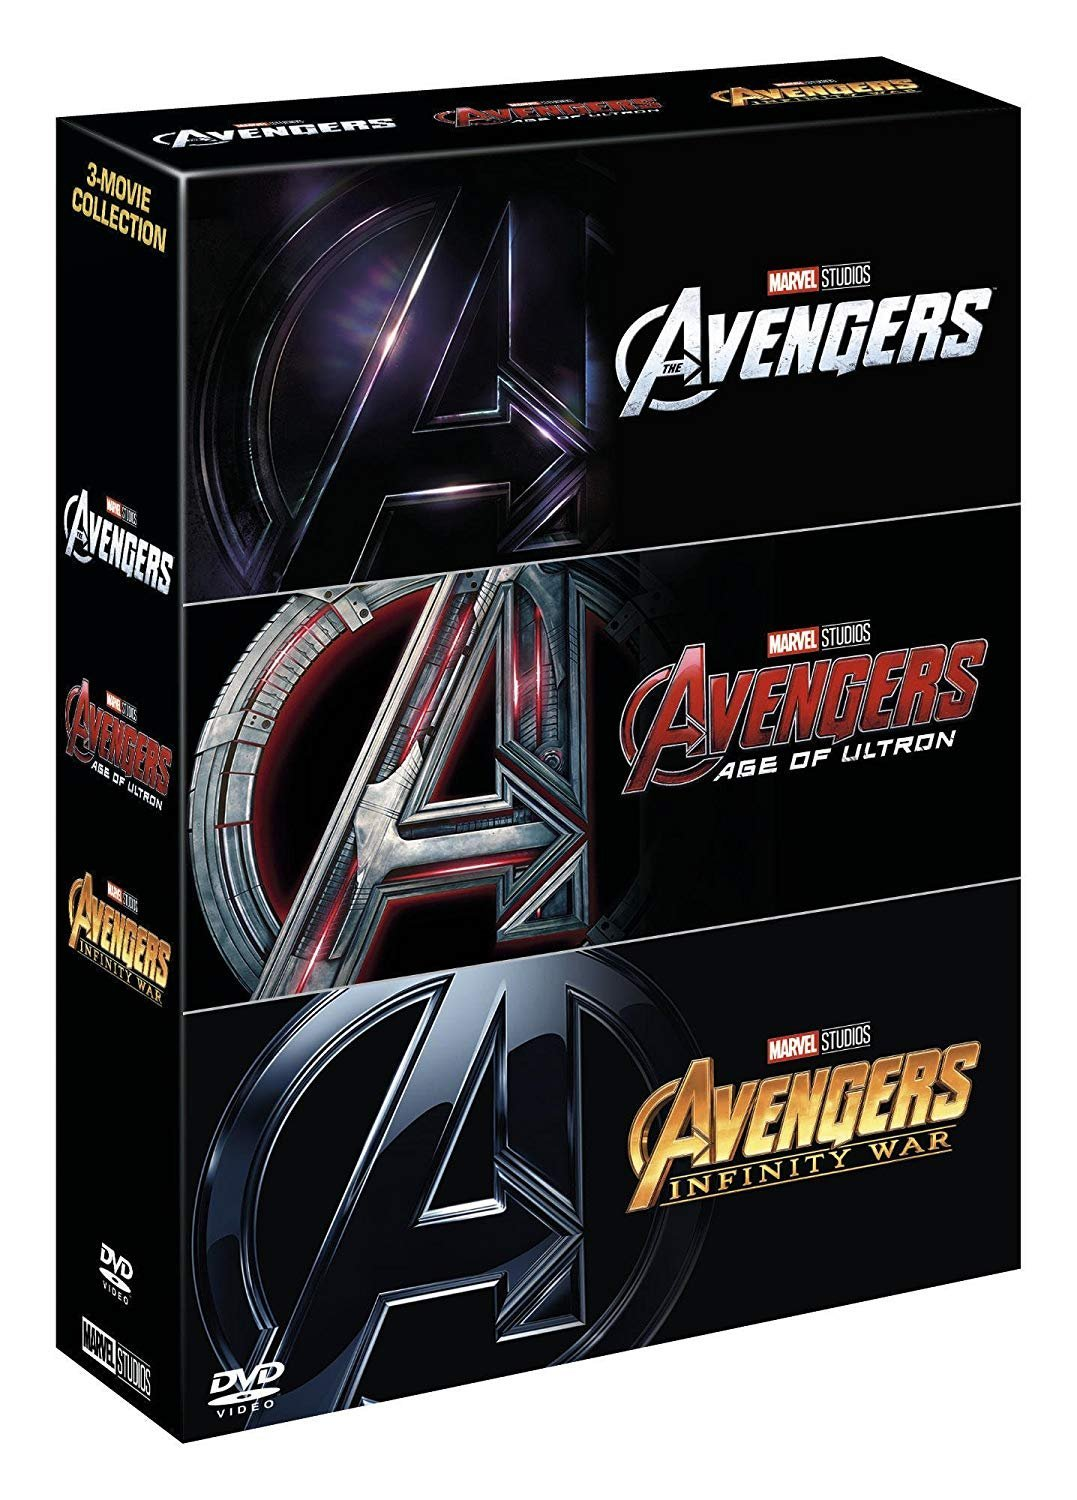 Marvel 'The Avengers' Box Set